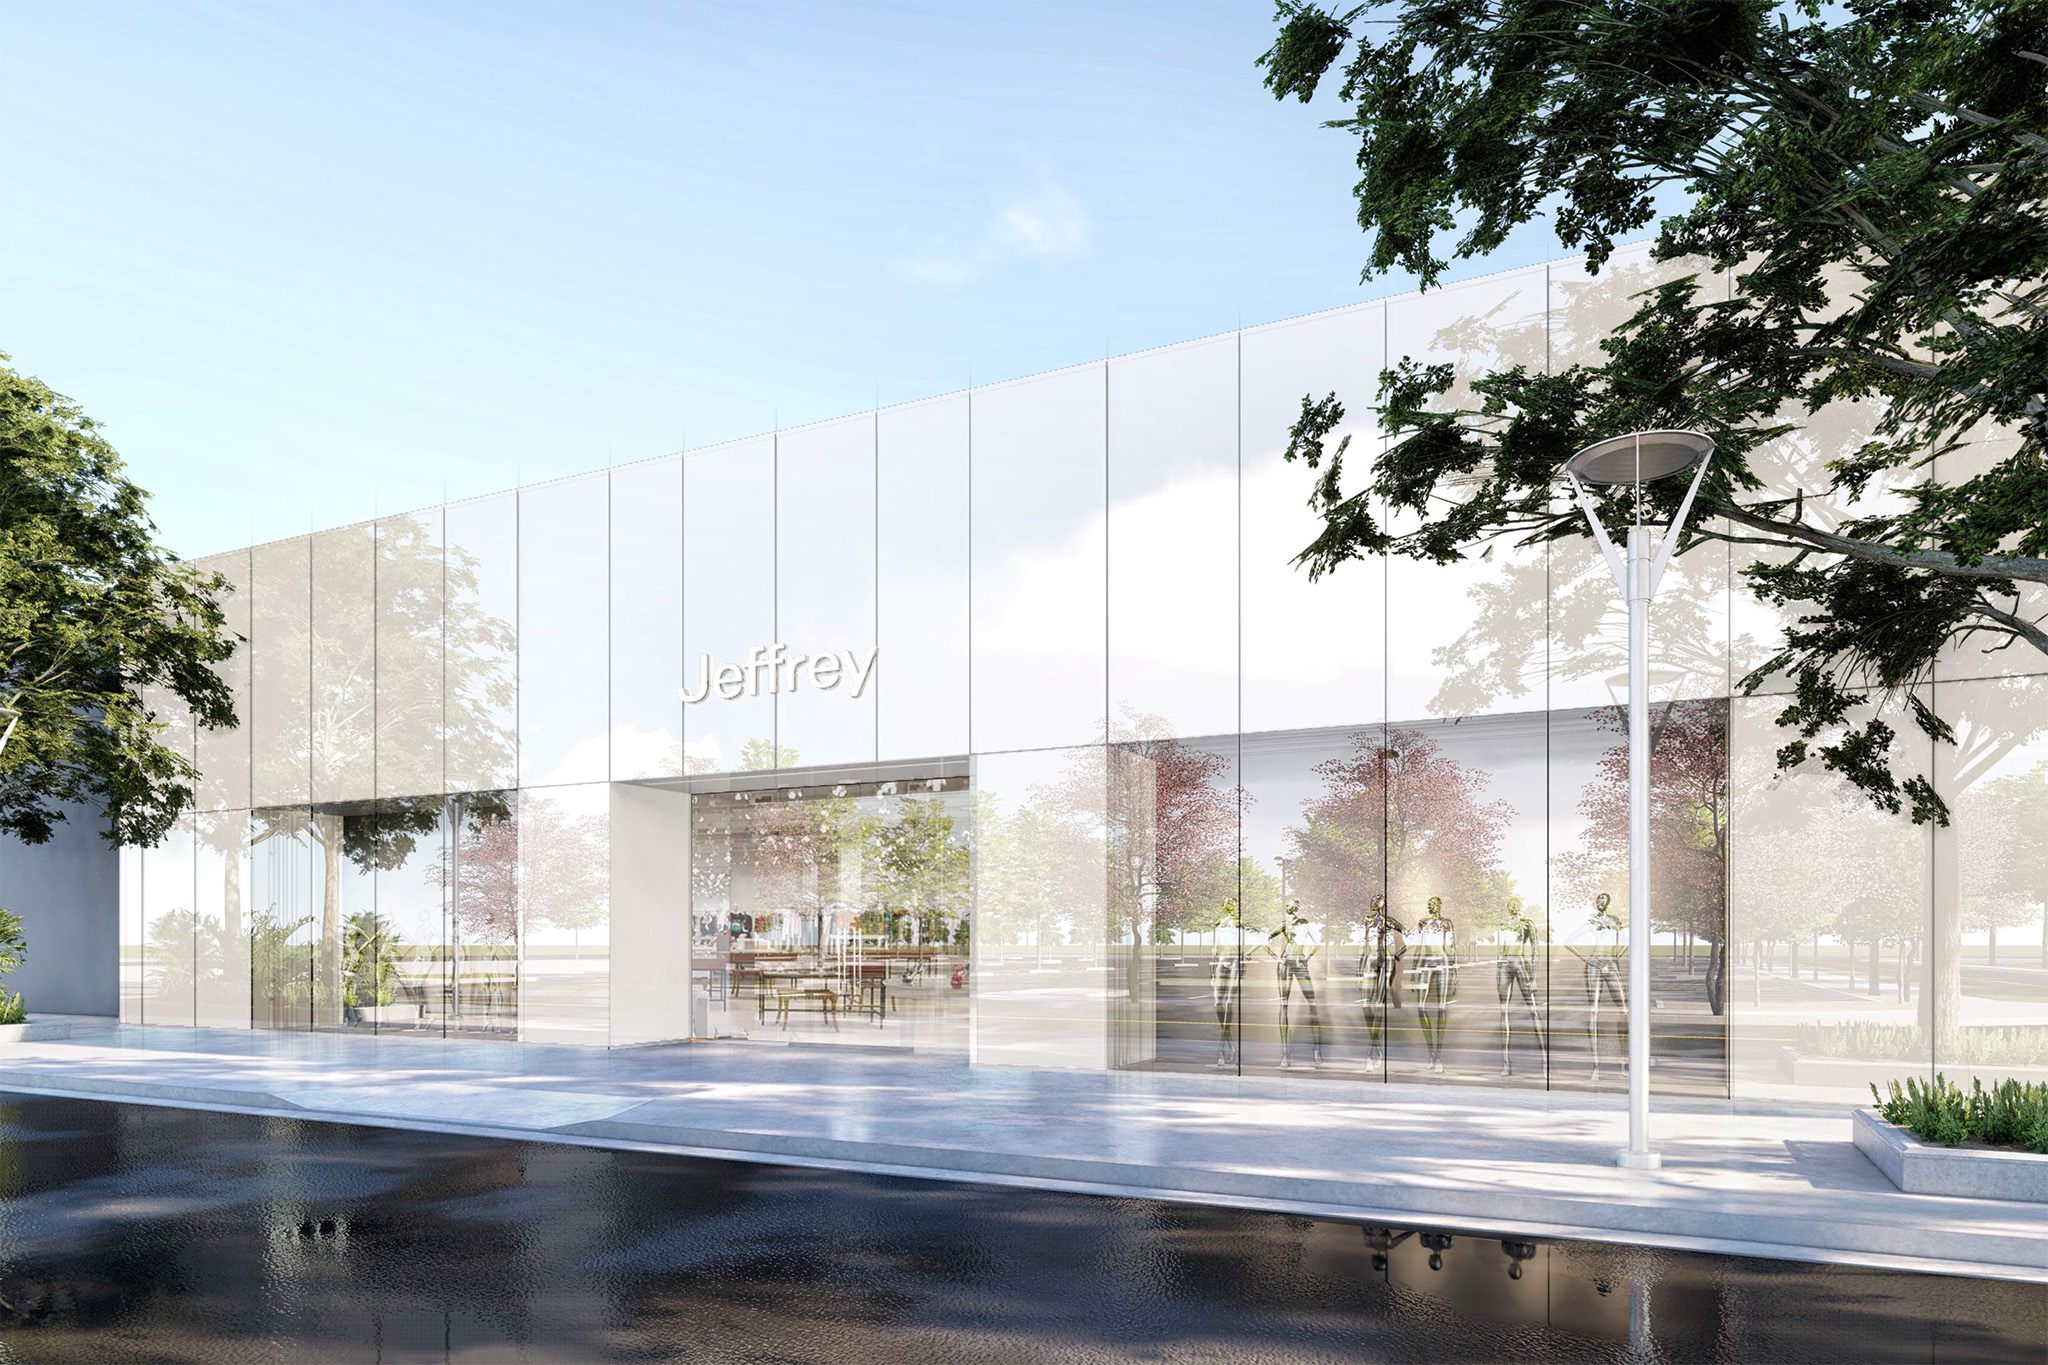 The new Jeffrey store at the Stanford Shopping Center in Palo Alto, California.